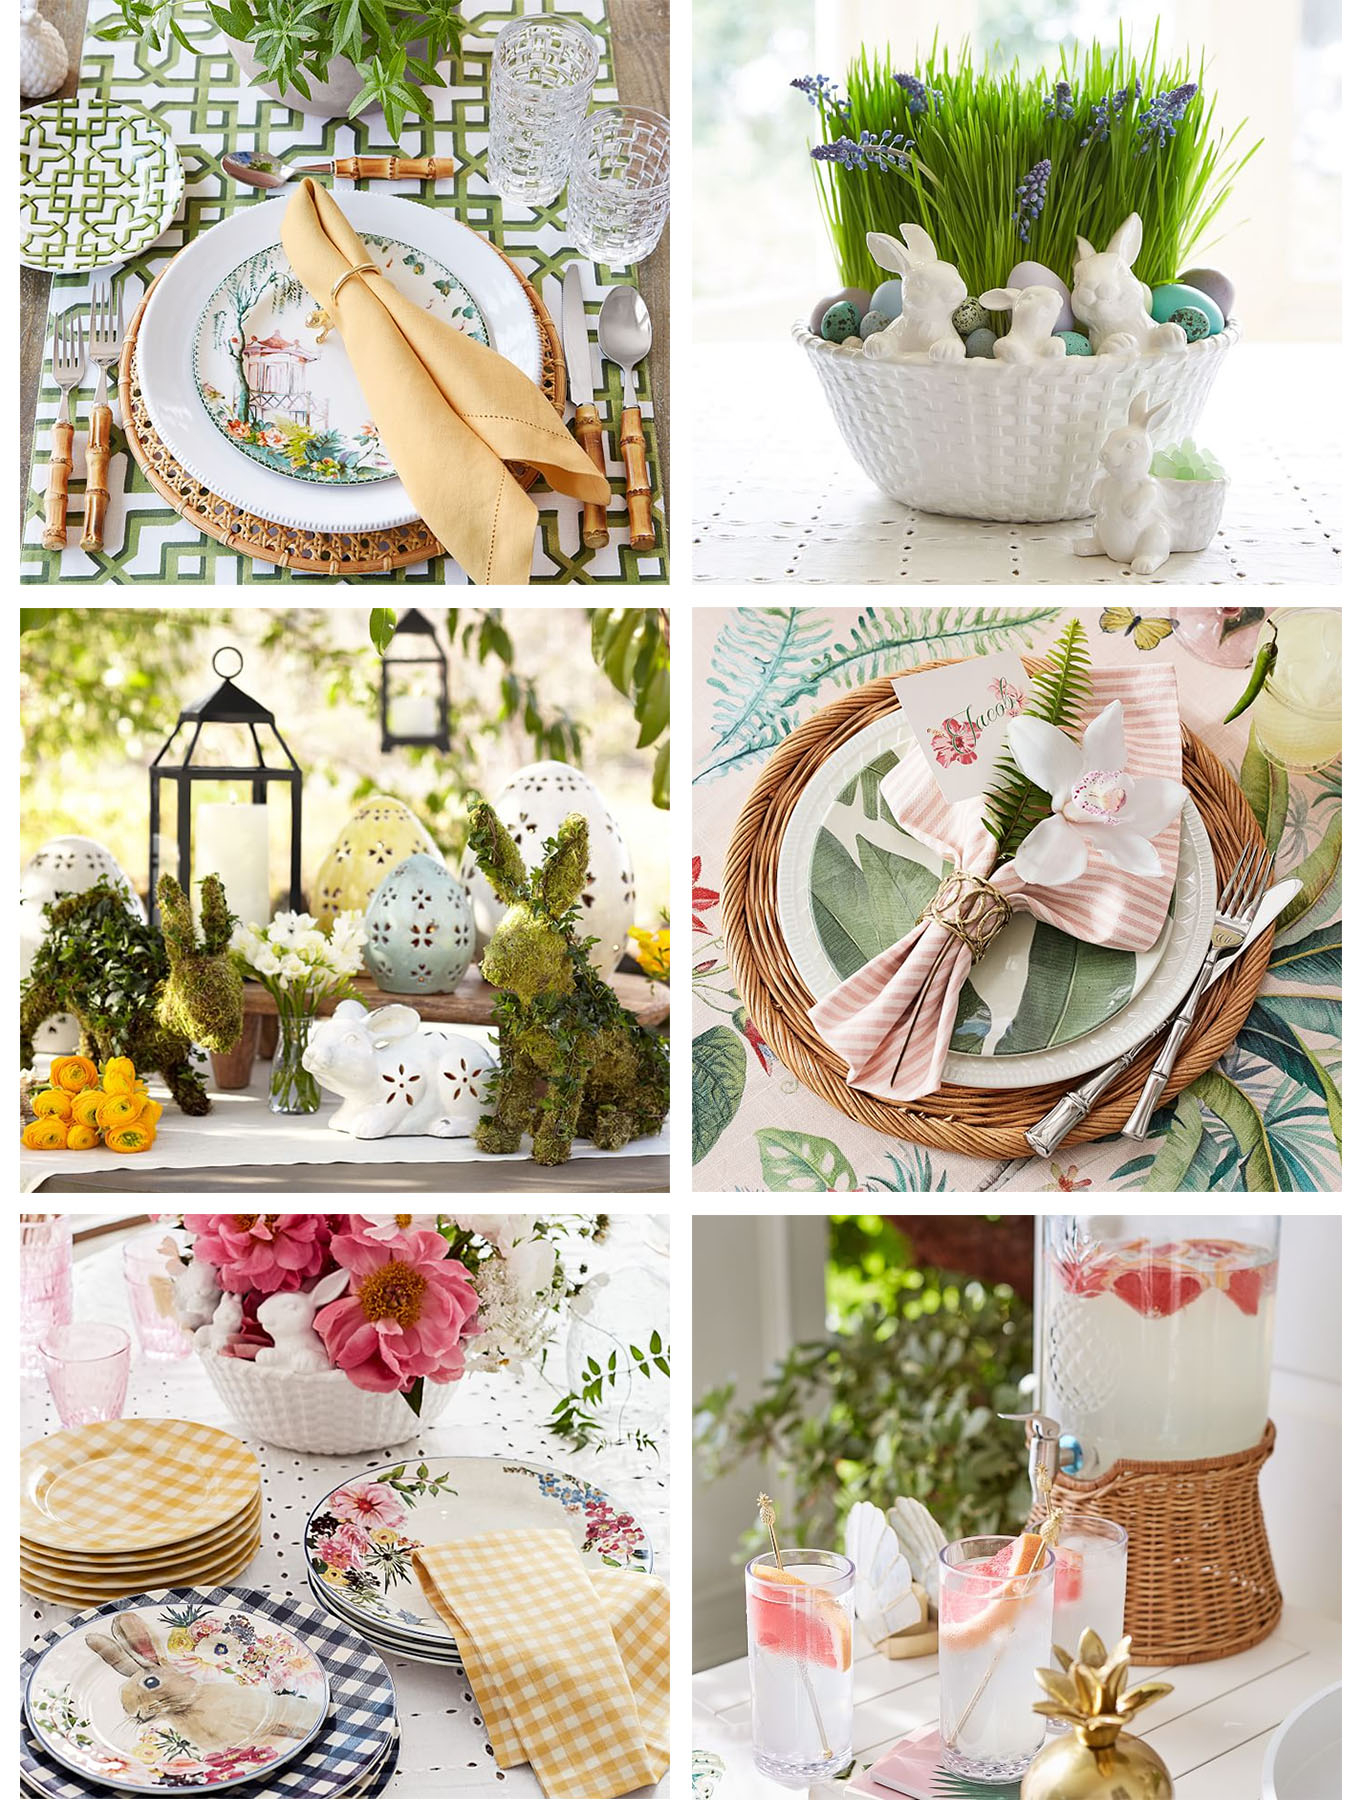 With Easter just around the corner, Ridgely Brode is thinking about decorating her table and shares some new things that she found to add to her collection on Ridgely's Radar.